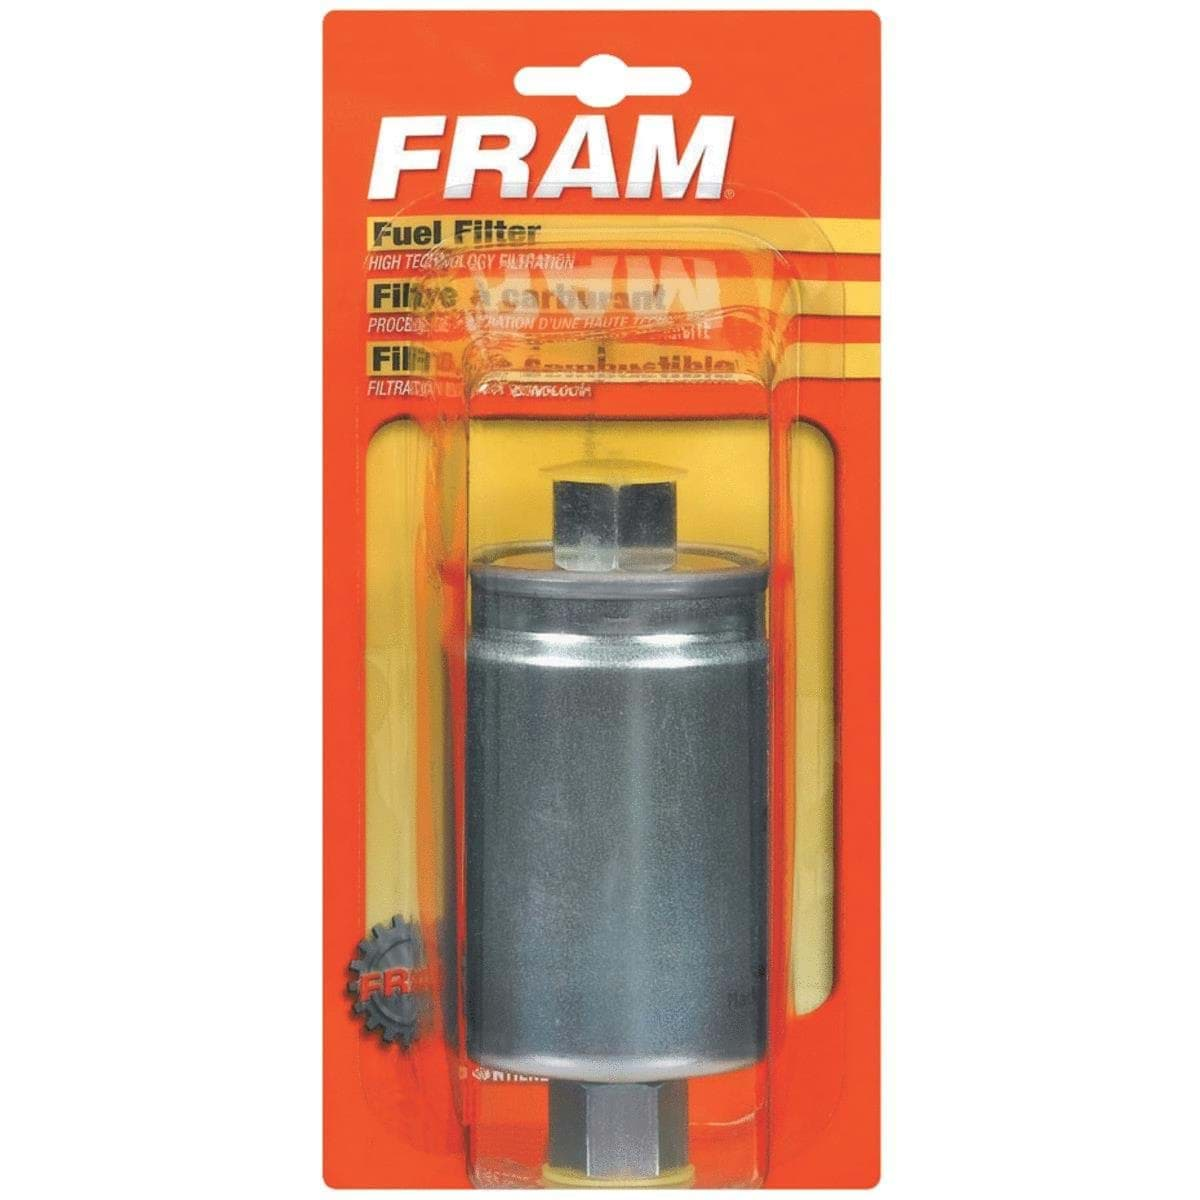 [WLLP_2054]   RopeSoapNDope. Fram Fuel Filter | Fram Fuel Filter Catalog |  | Rope Soap 'N Dope